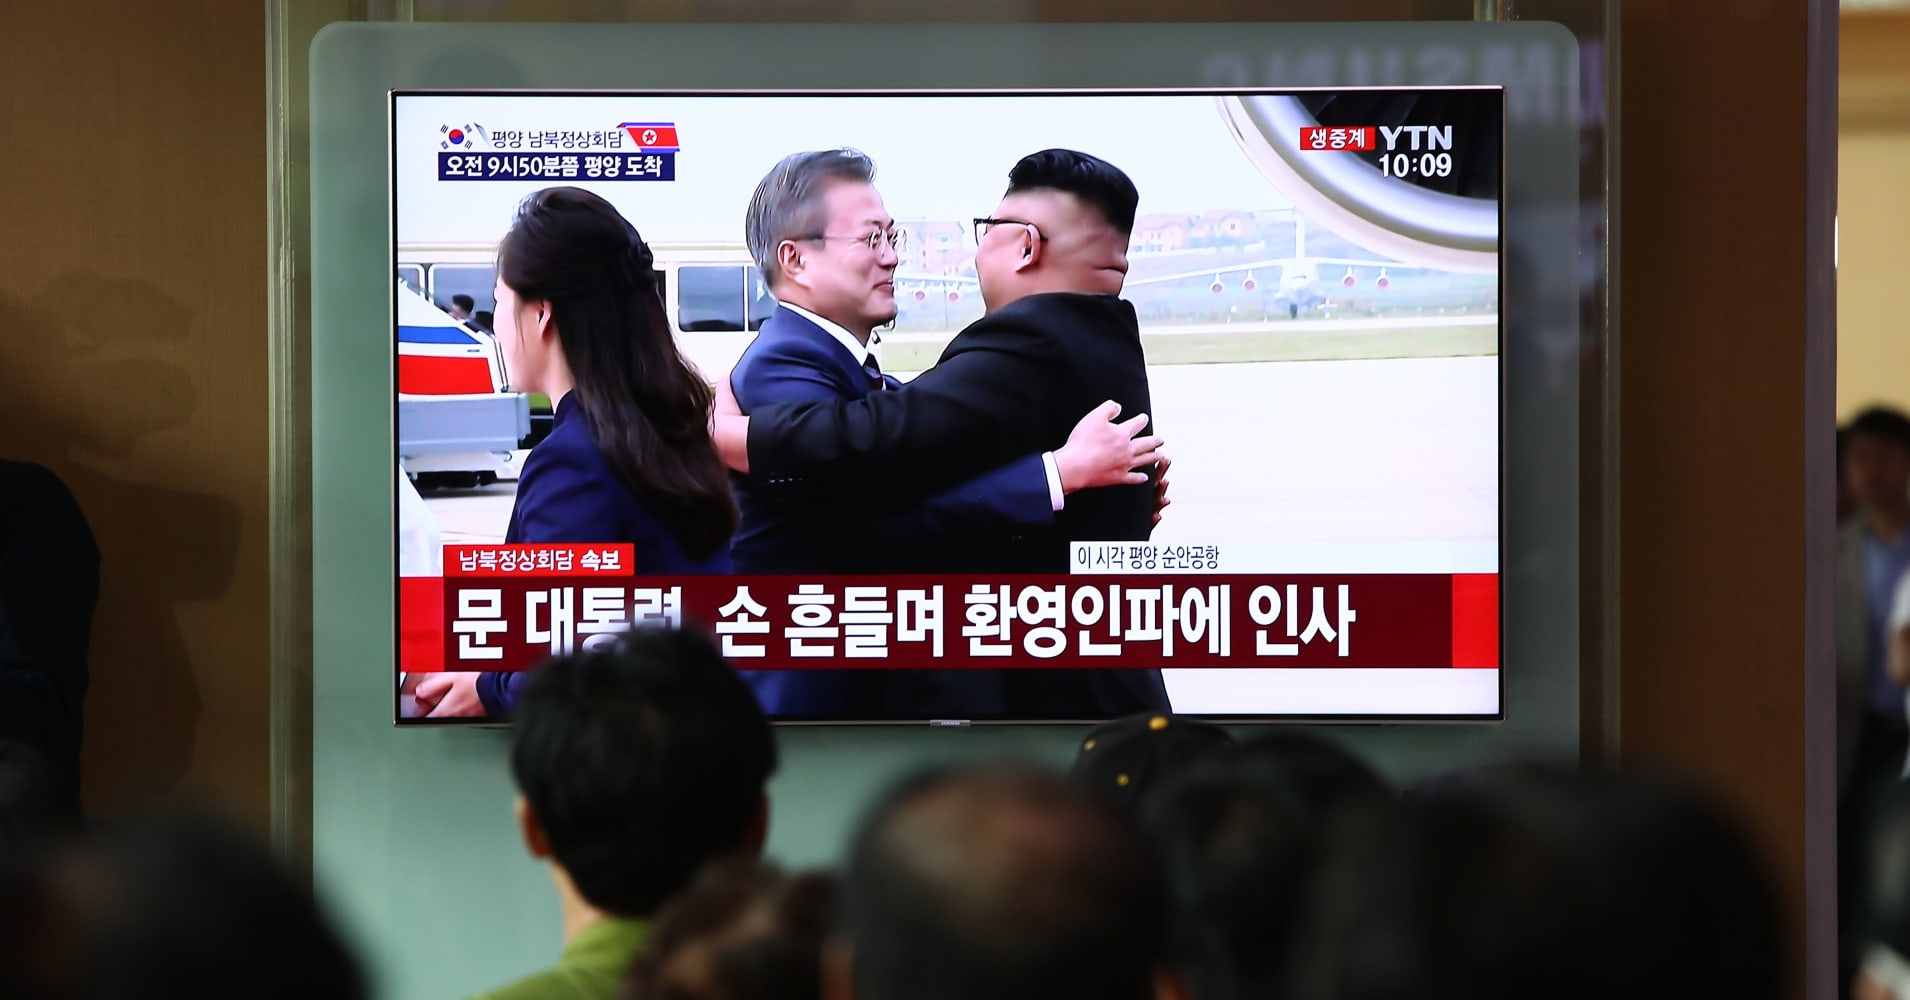 South Korean peace efforts look 'out of sync' with elimination of North Korean nukes